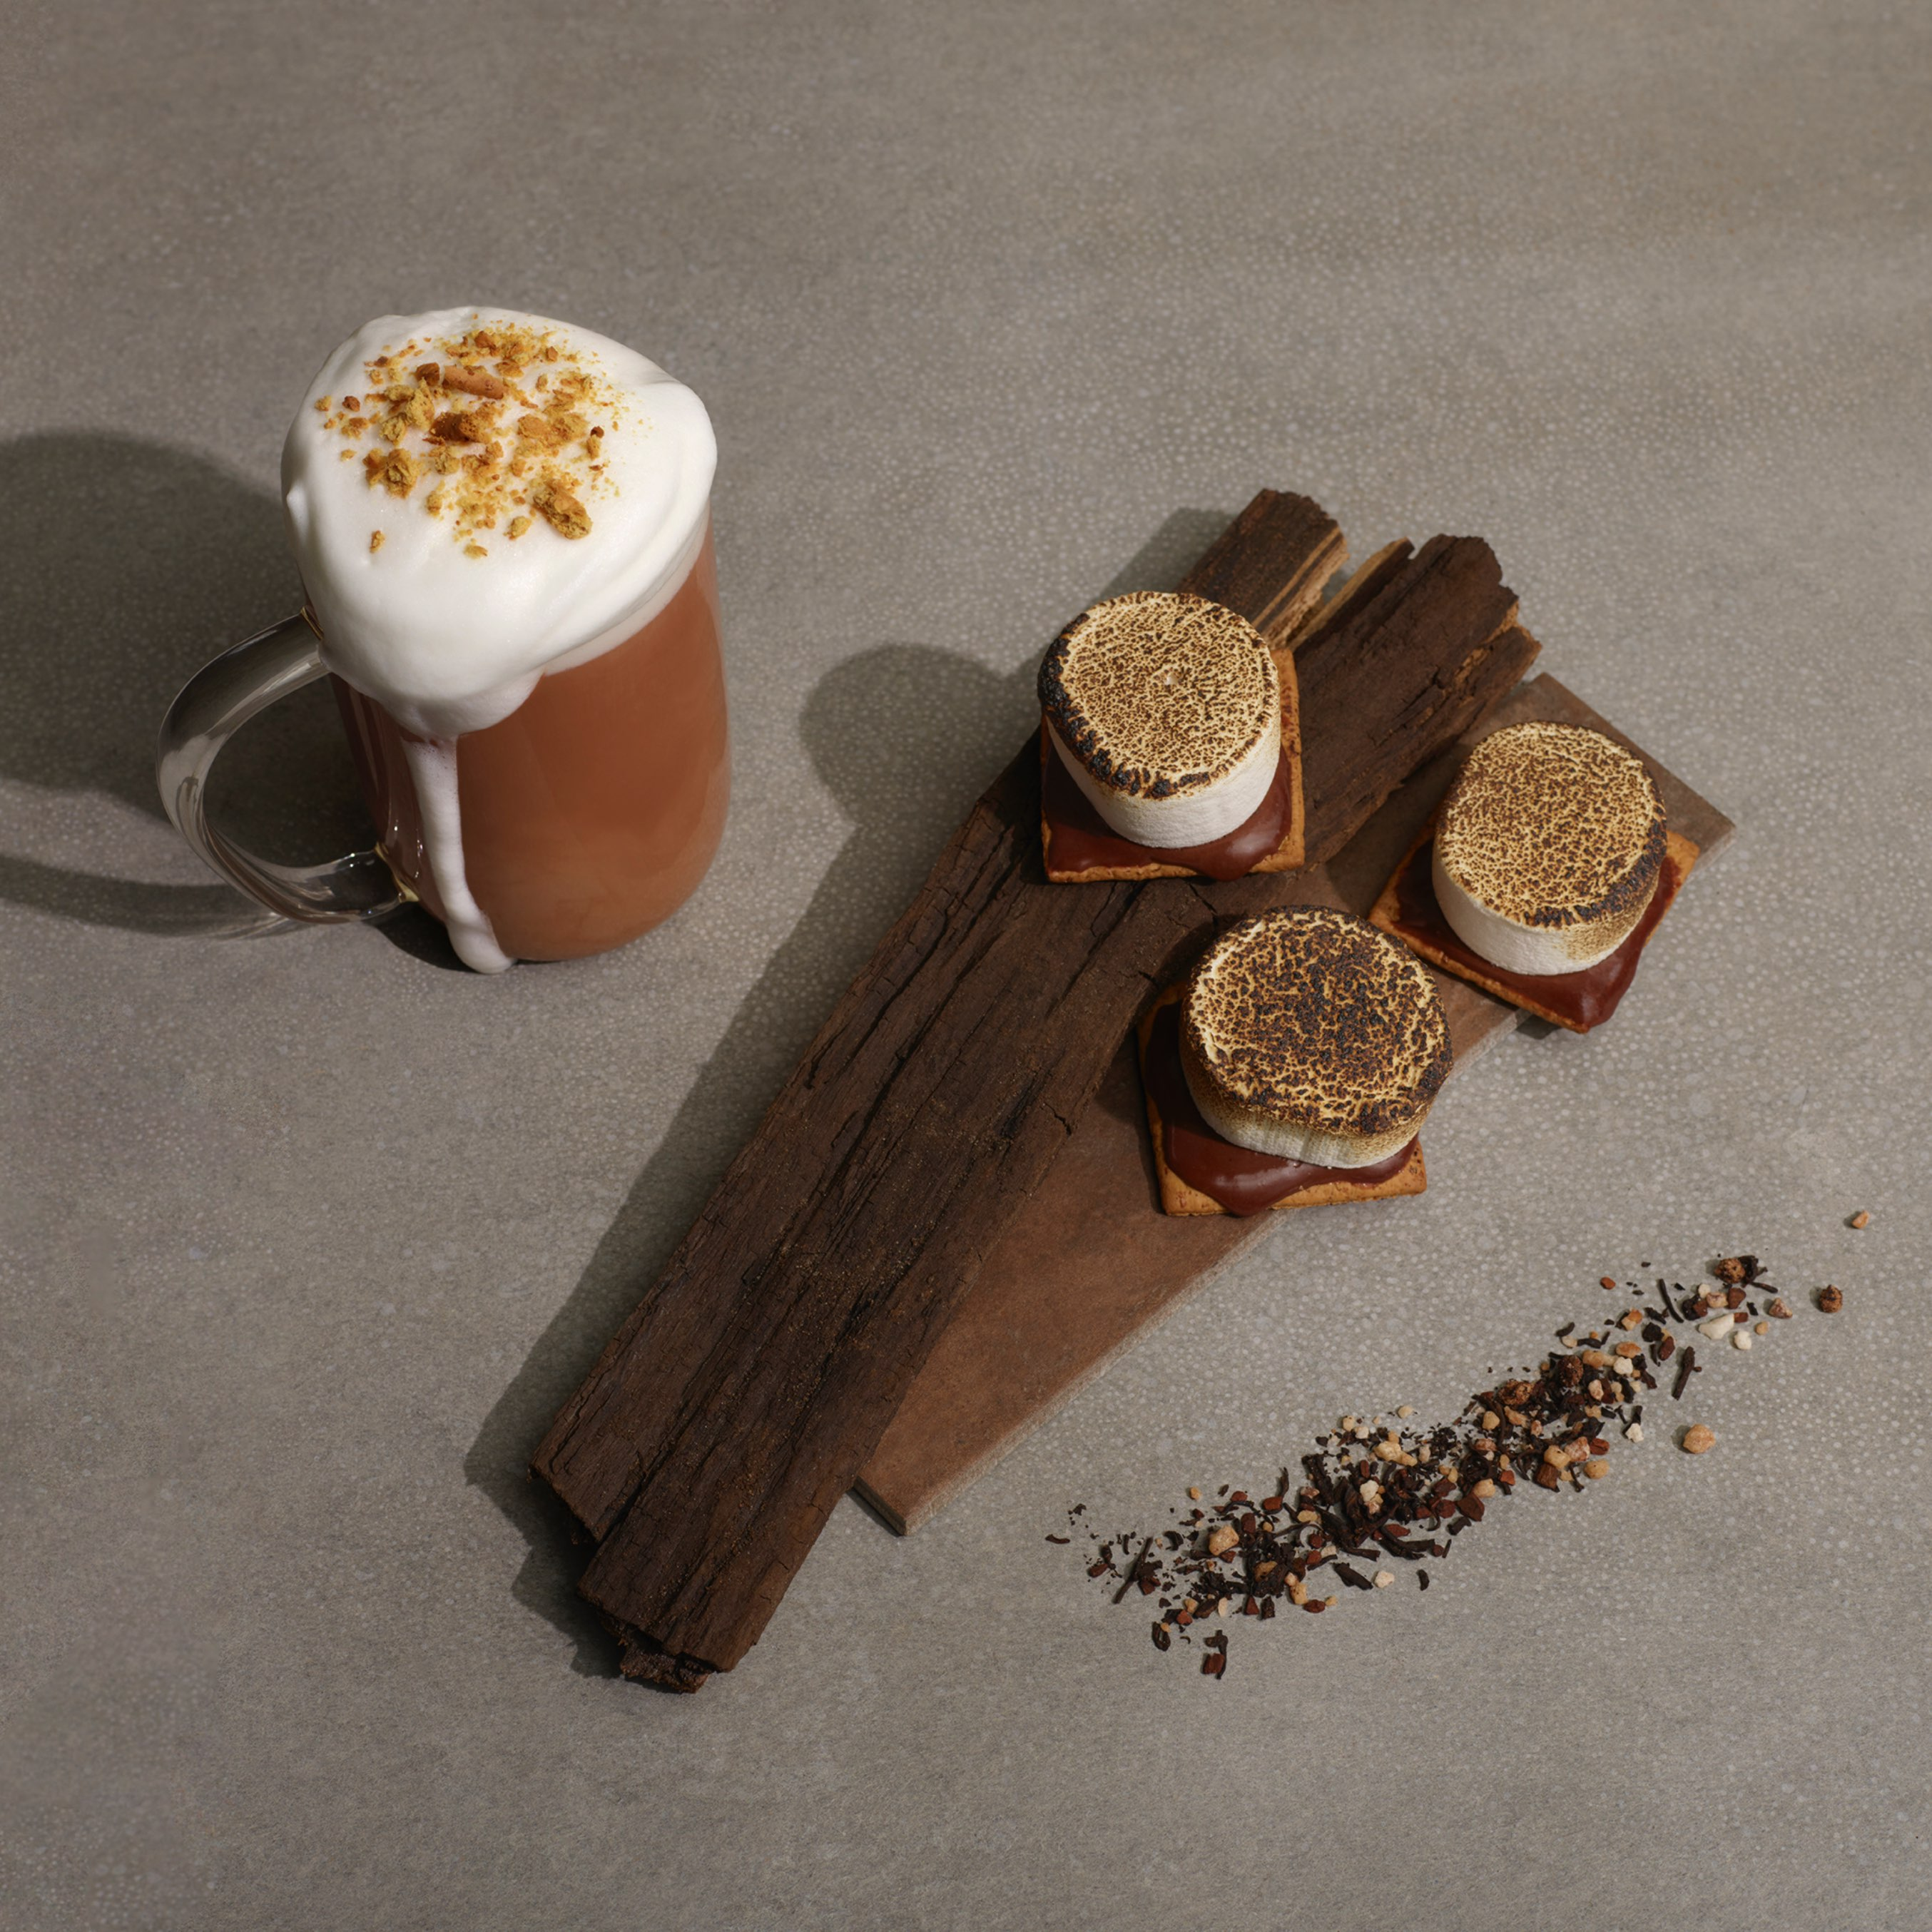 Clear 16 oz glass mug with S'mores Chai pu'erh tea accompanied by s'mores dessert on logs.